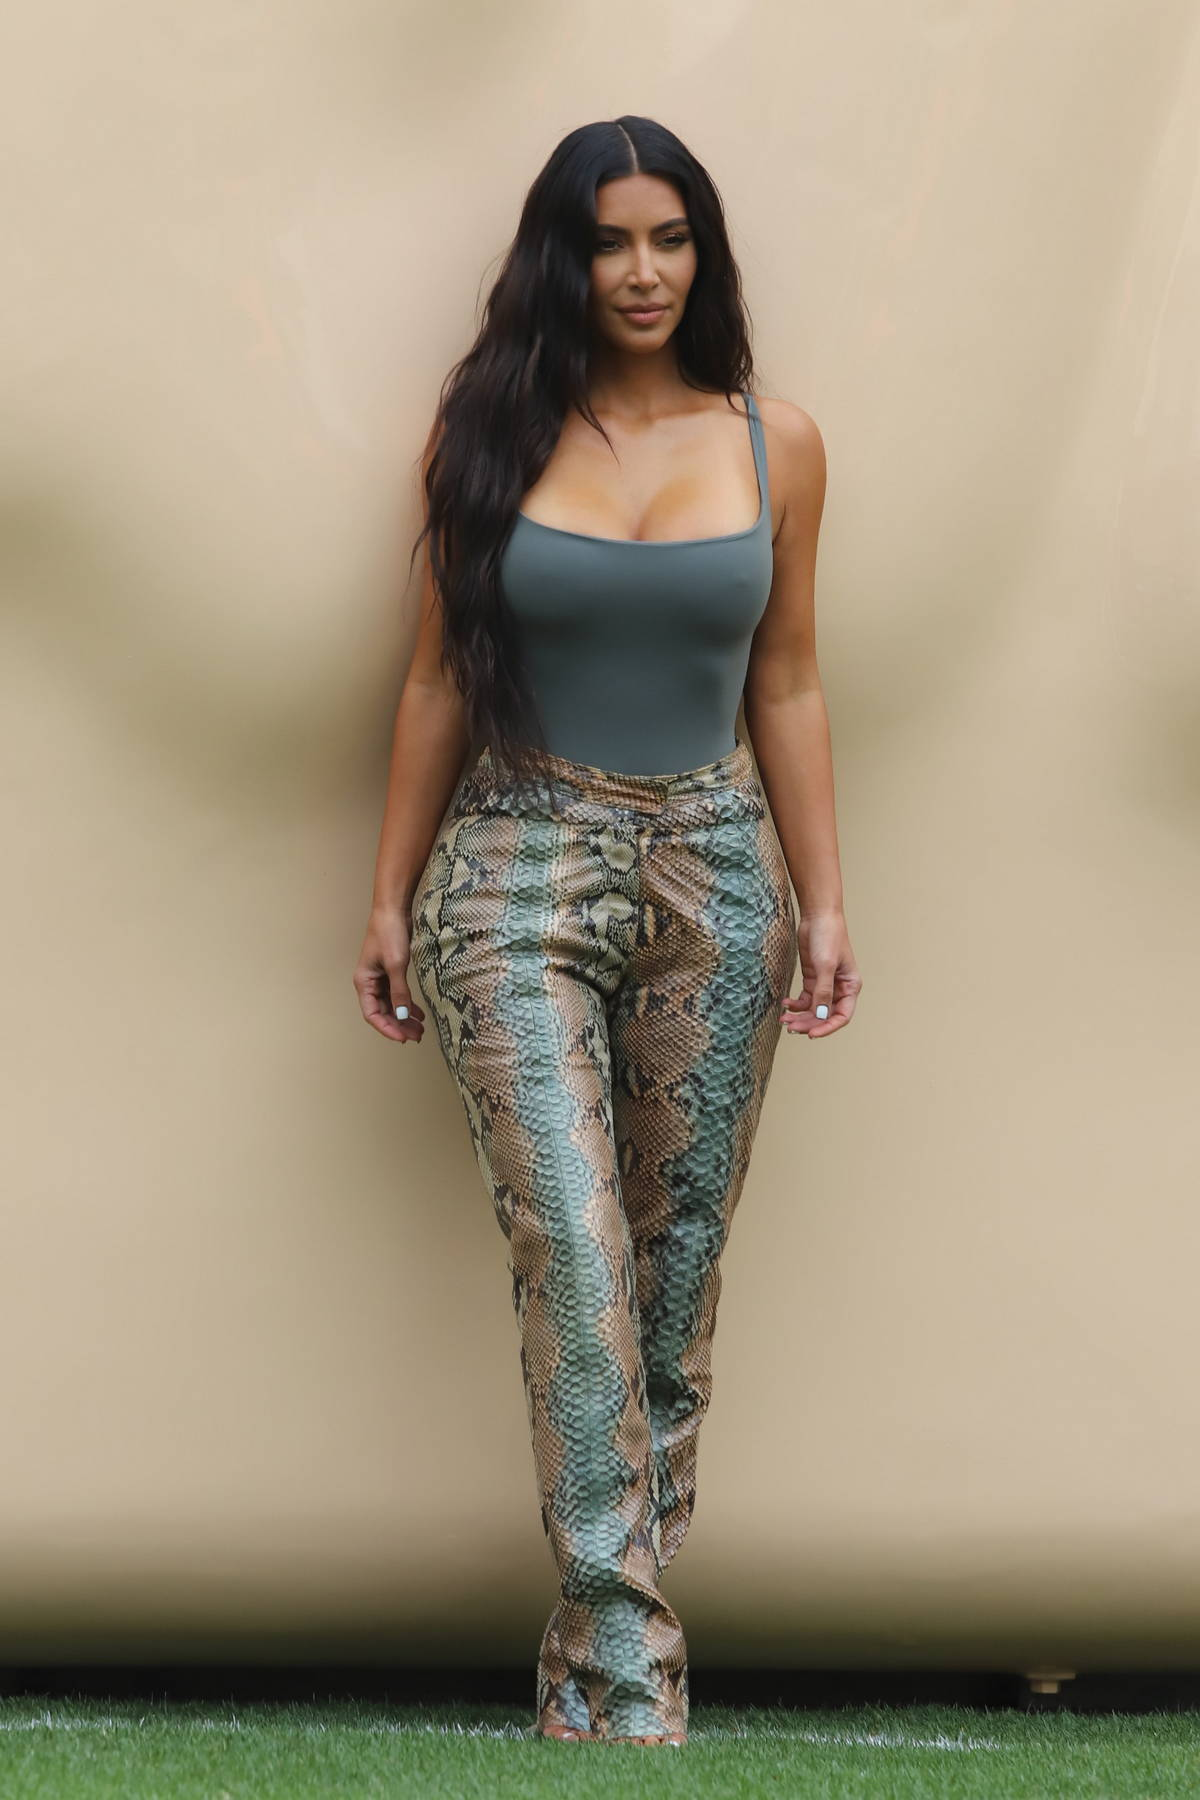 Kim Kardashian puts on a curvy display as she surprises fans at her SKIMS pop up shop at the Grove in Los Angeles